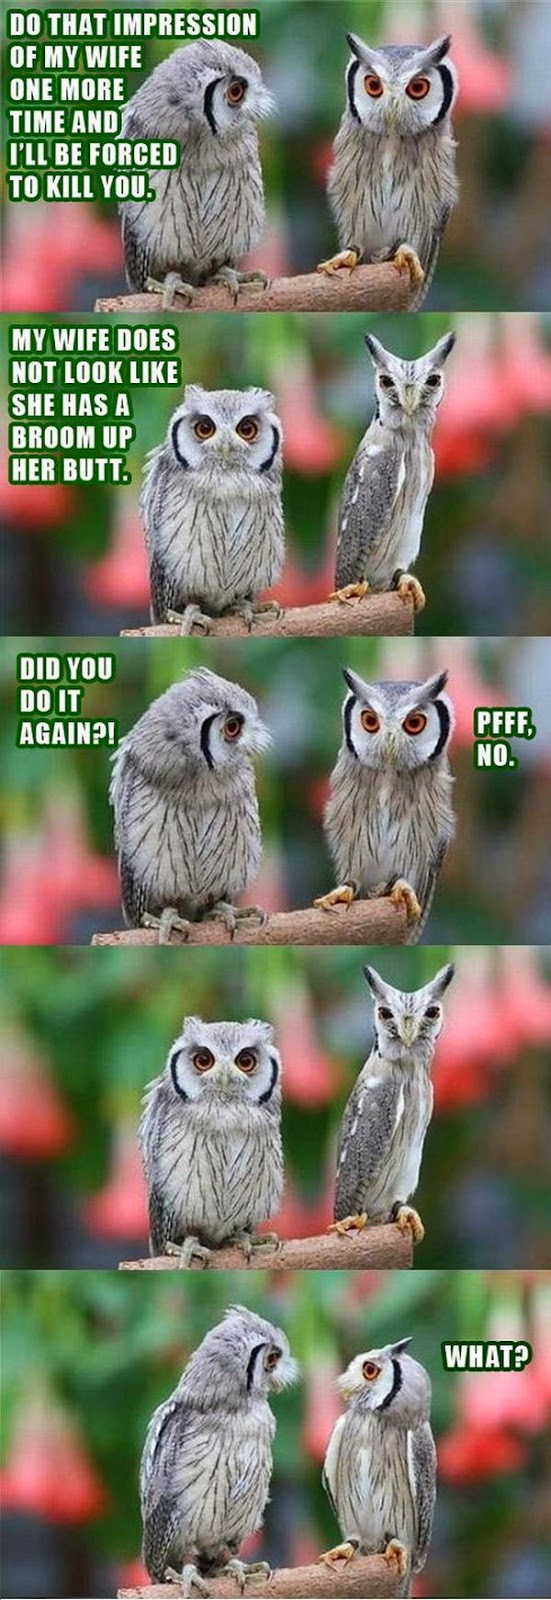 30 Funny animal captions - part 21 (30 pics), captioned animal pictures, owls